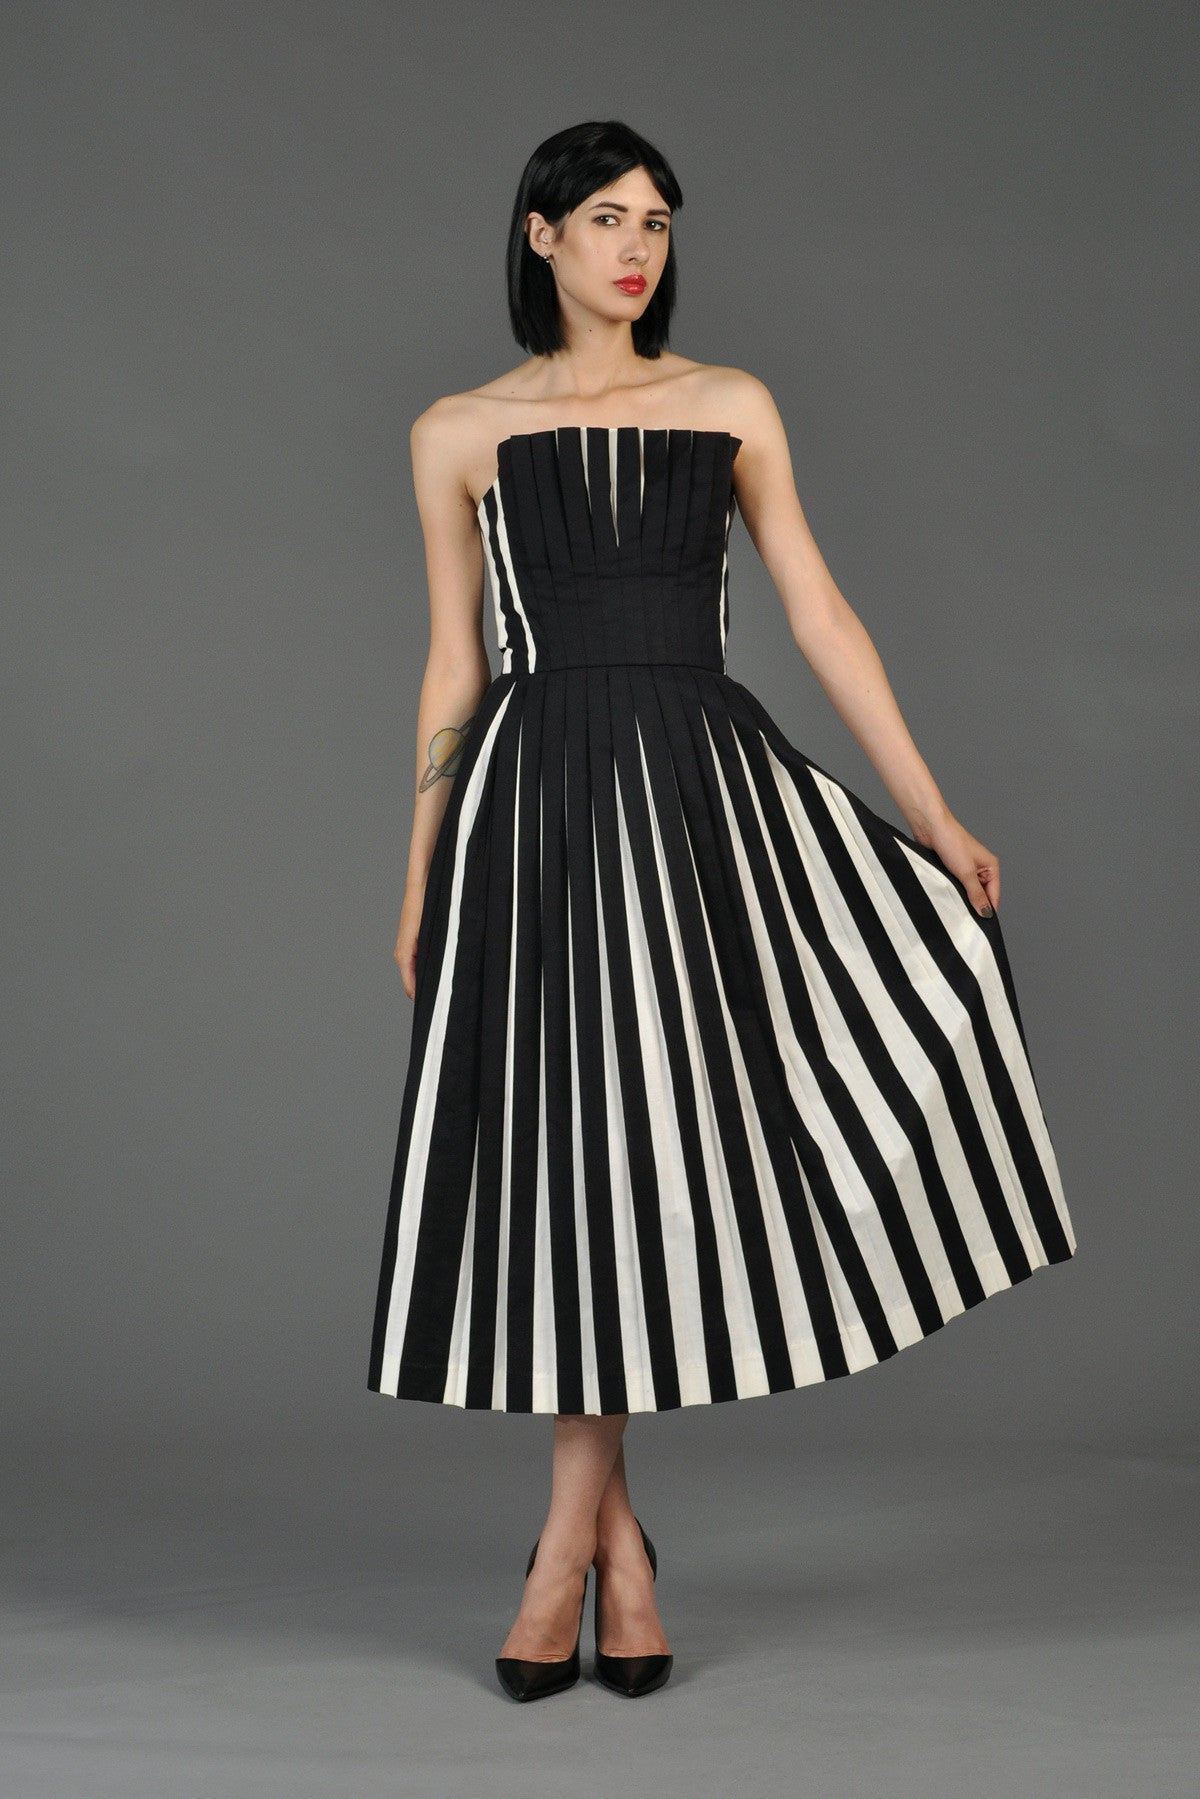 Victor Costa Black + White Pleated Cocktail Dress | BUSTOWN MODERN